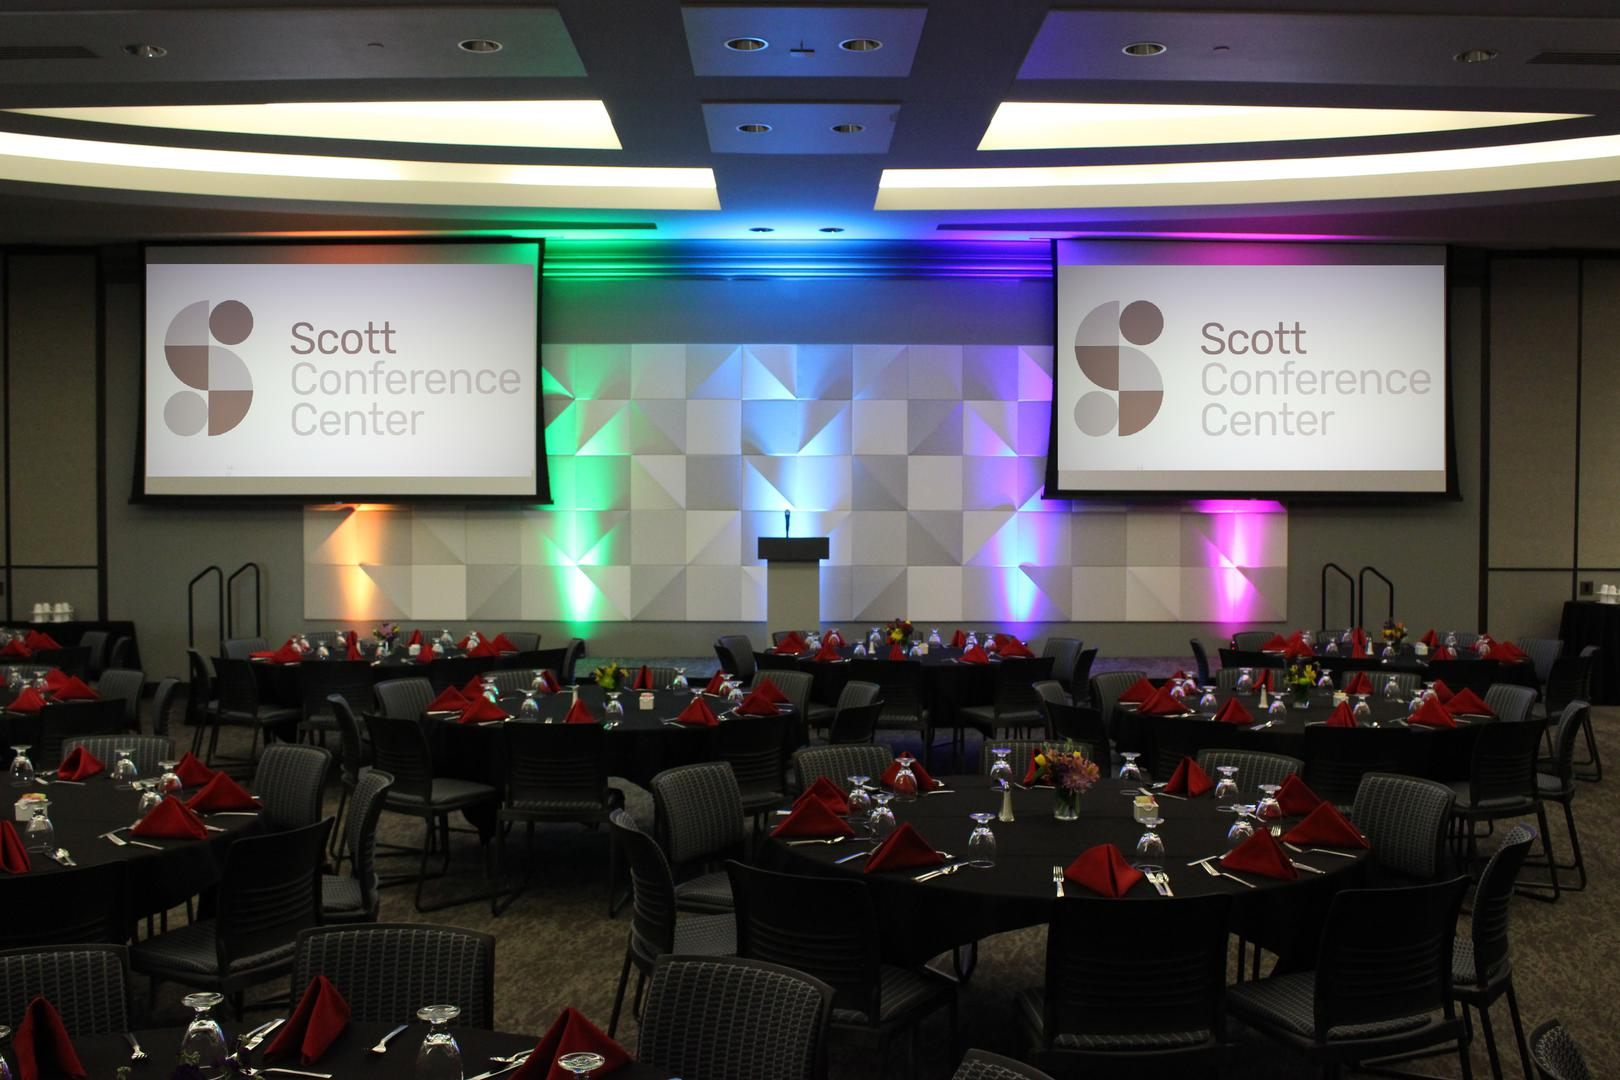 space at Scott Conference Center